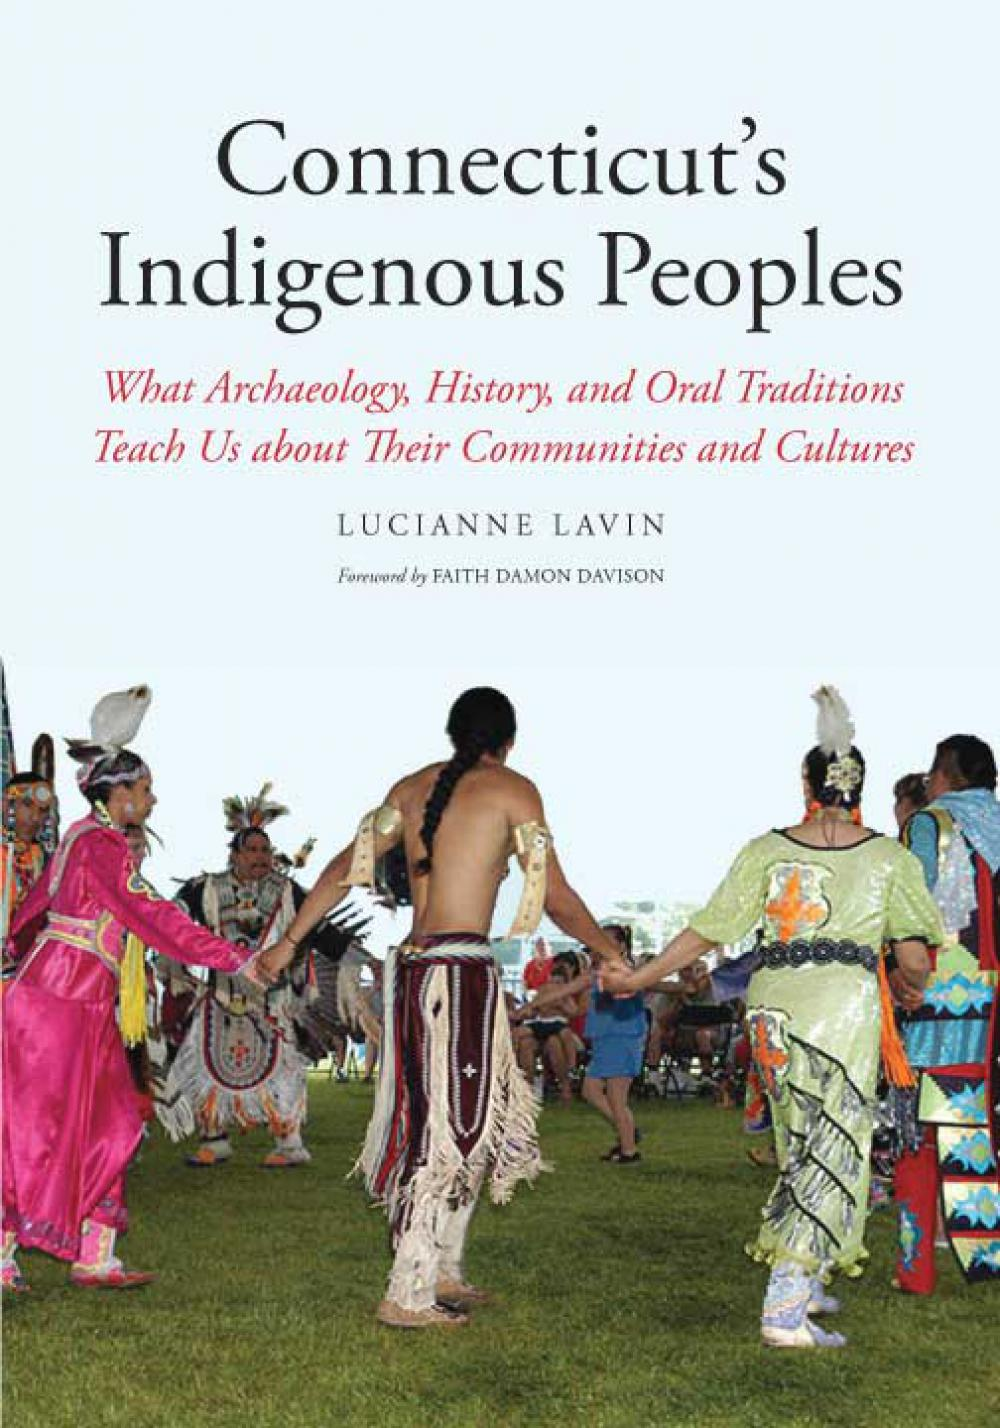 """""""Connecticut's Indigenous Peoples: What Archeology, History, and  Oral Traditions Teach Us About Their Communities and Cultures""""""""  Lucianne Lavin, Ph.D. Director of Research and Collections Institute for American Indian Studies    Boardman Store Gallery  November 10 at  2:00 pm    Lucianne Levin has a new book, published this June. Her presentation coincides with the opening of a new exhibit in the lower gallery.  Cost: FREE."""